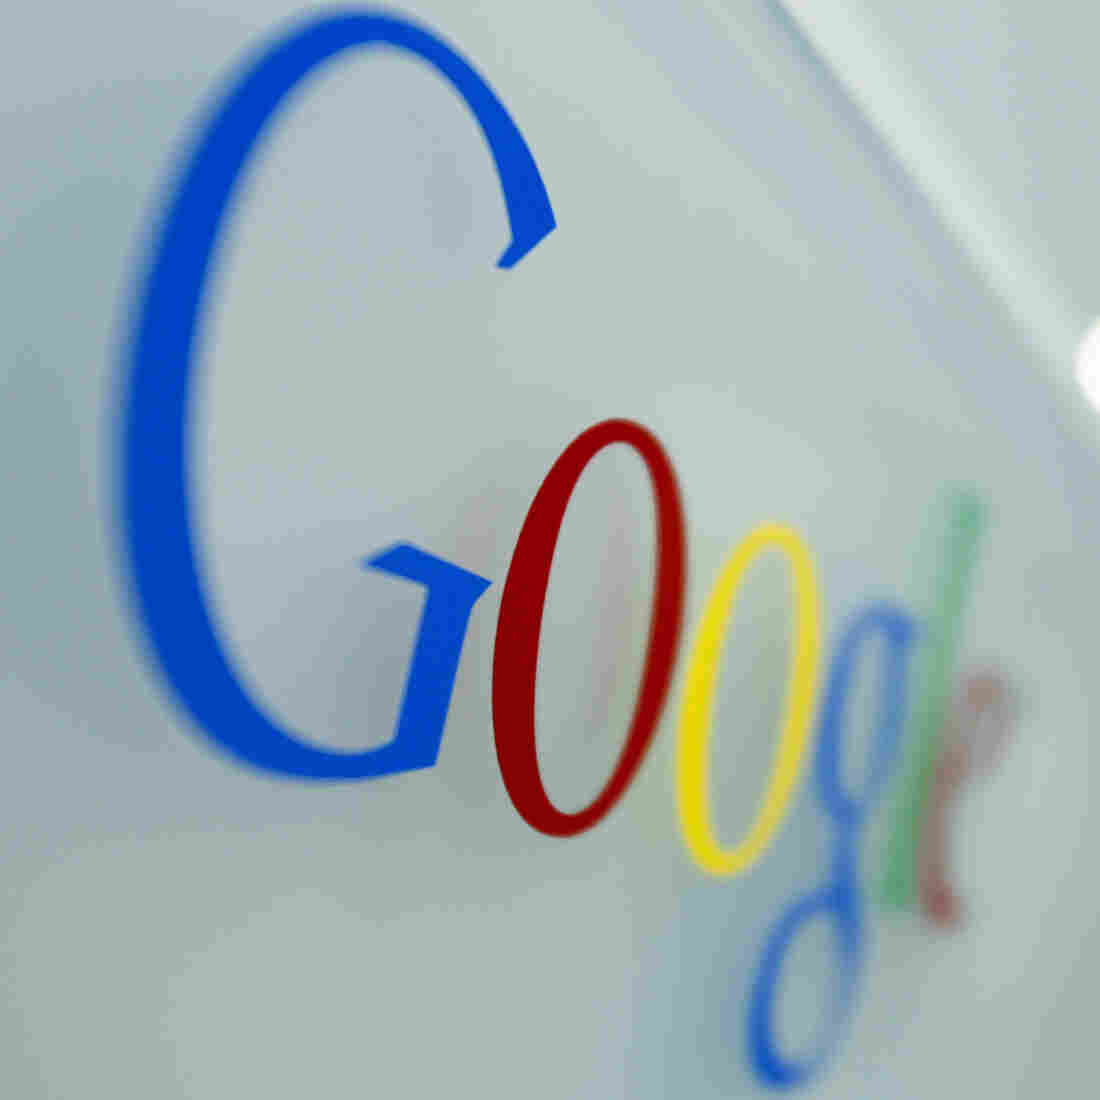 European Ruling On Removing Google Links May Leave A Mess